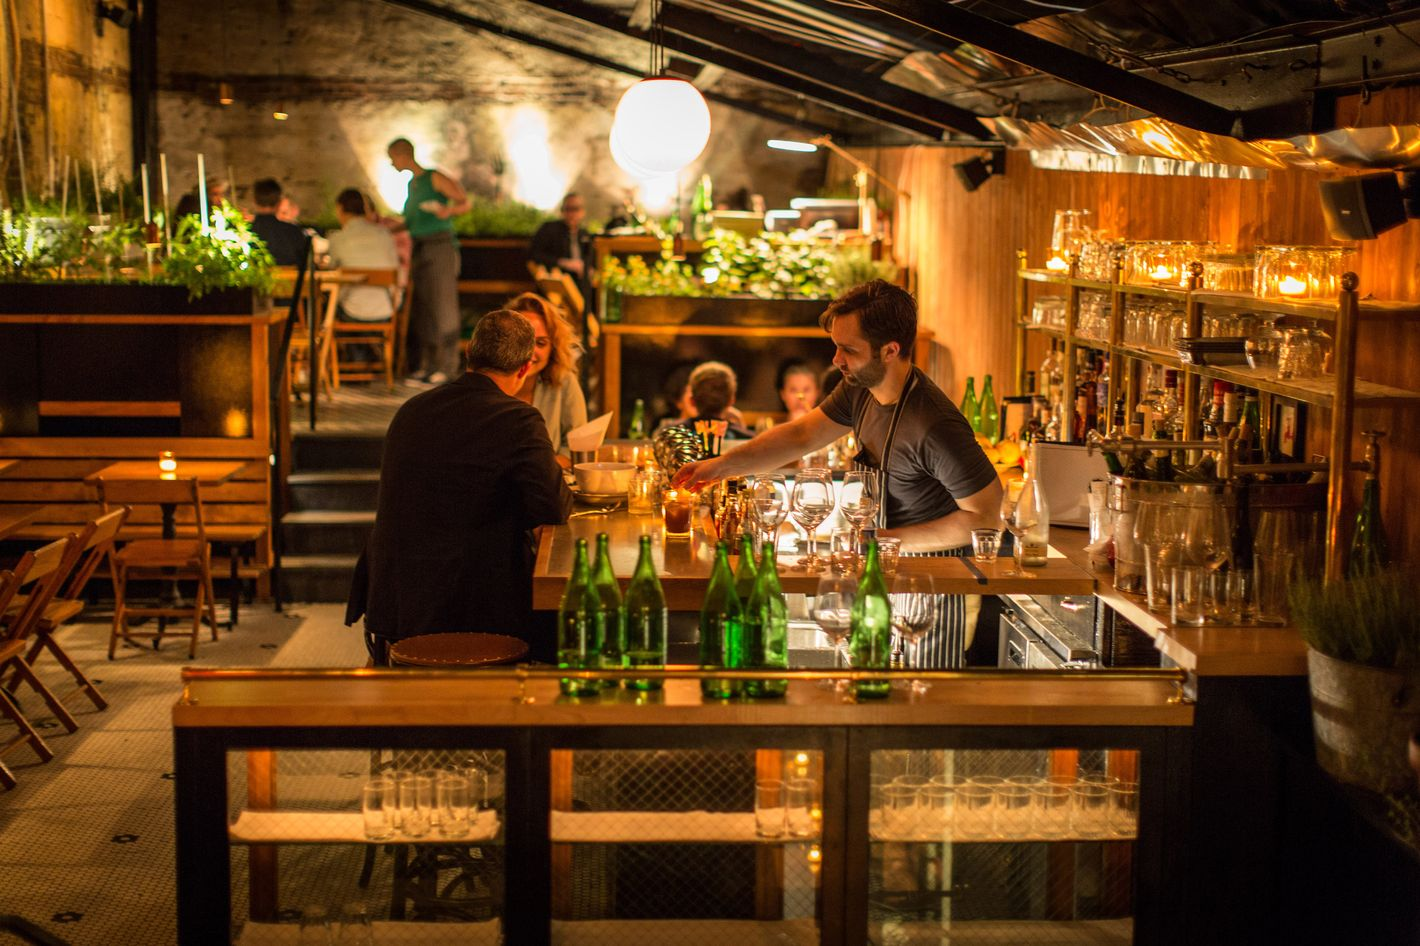 Montmartre will air the World Cup game during its party, too.